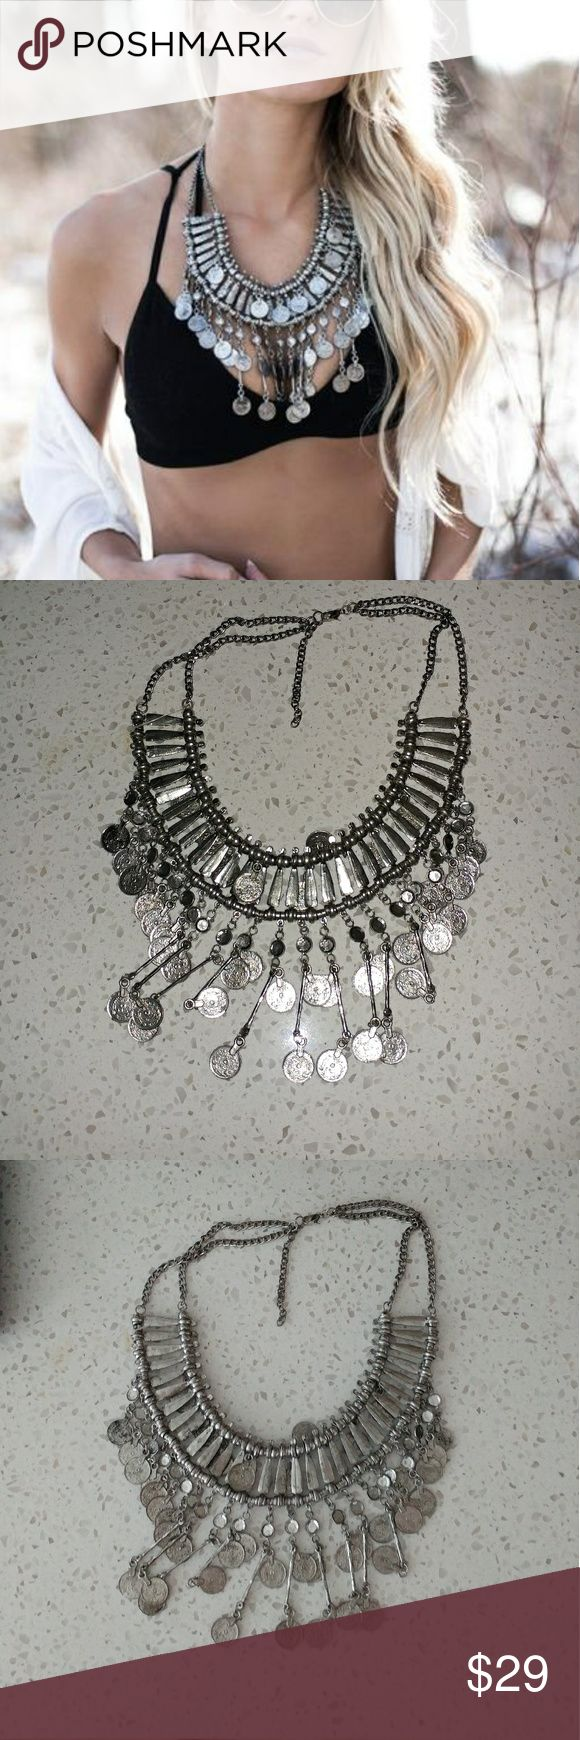 Xenia Statement Necklace Purchased from Vici Collections website. New and never worn. Beautiful summer piece staple. Perfect for upcoming festivals. Jewelry